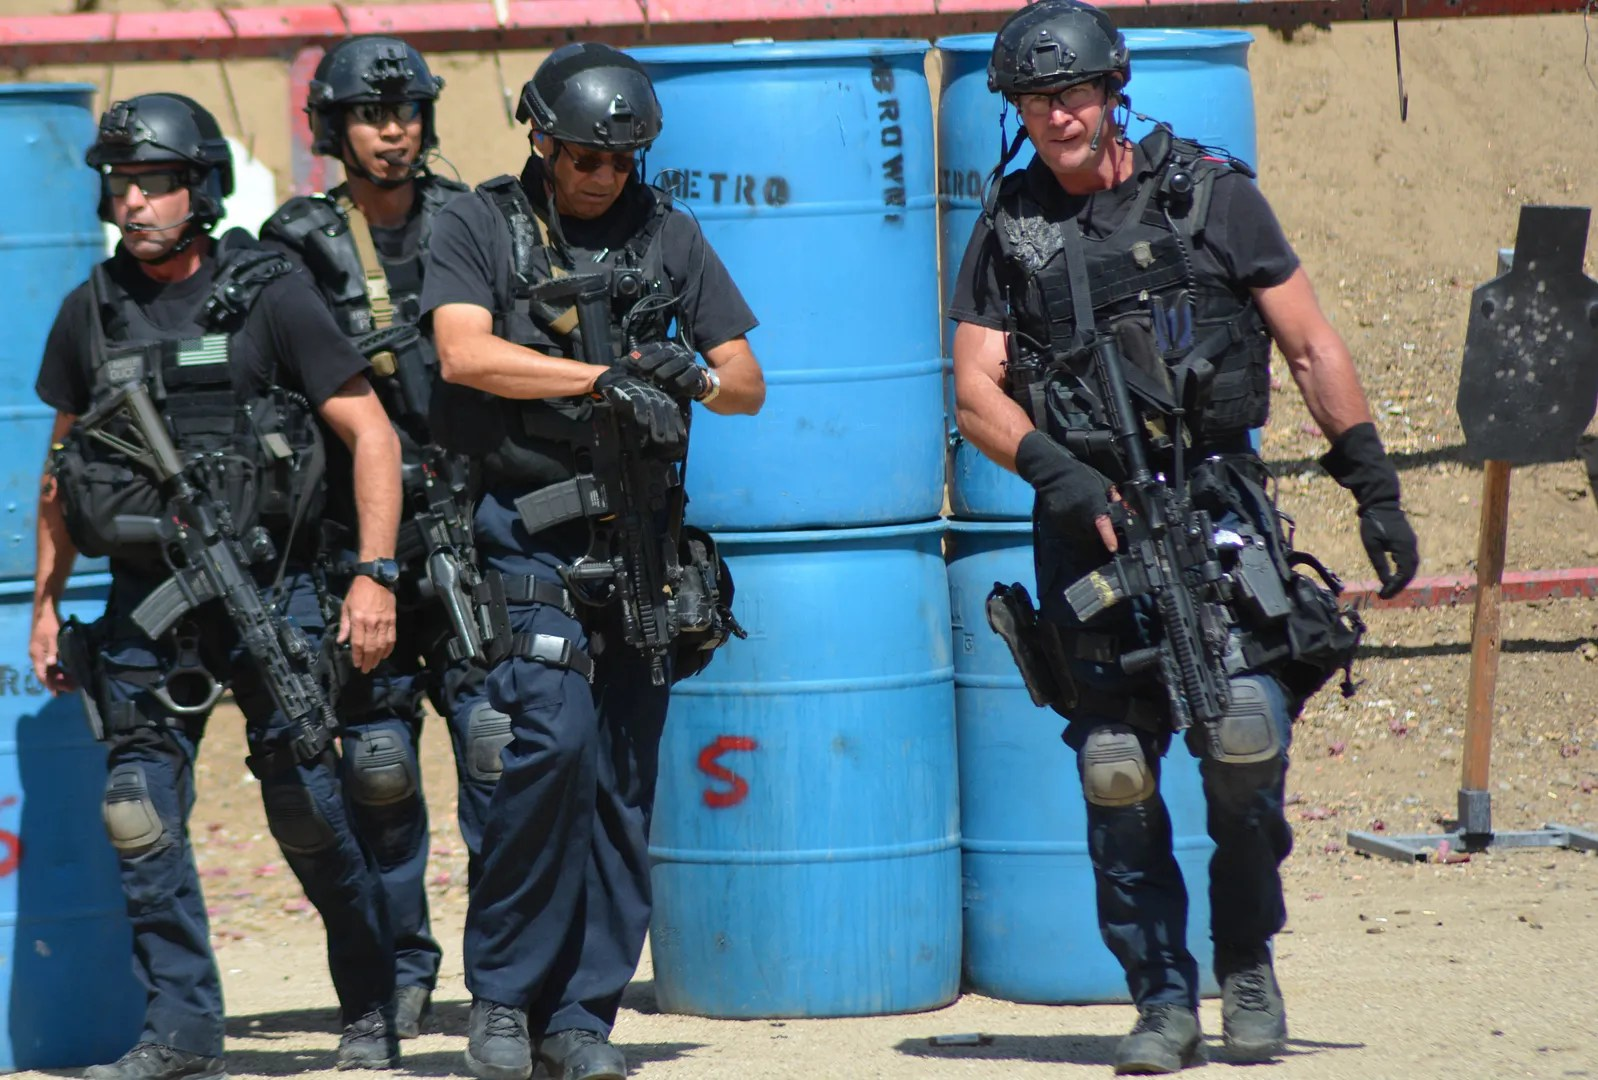 photo LAPD_SWAT_Exercise_1_zpsjmaw00qh.jpg